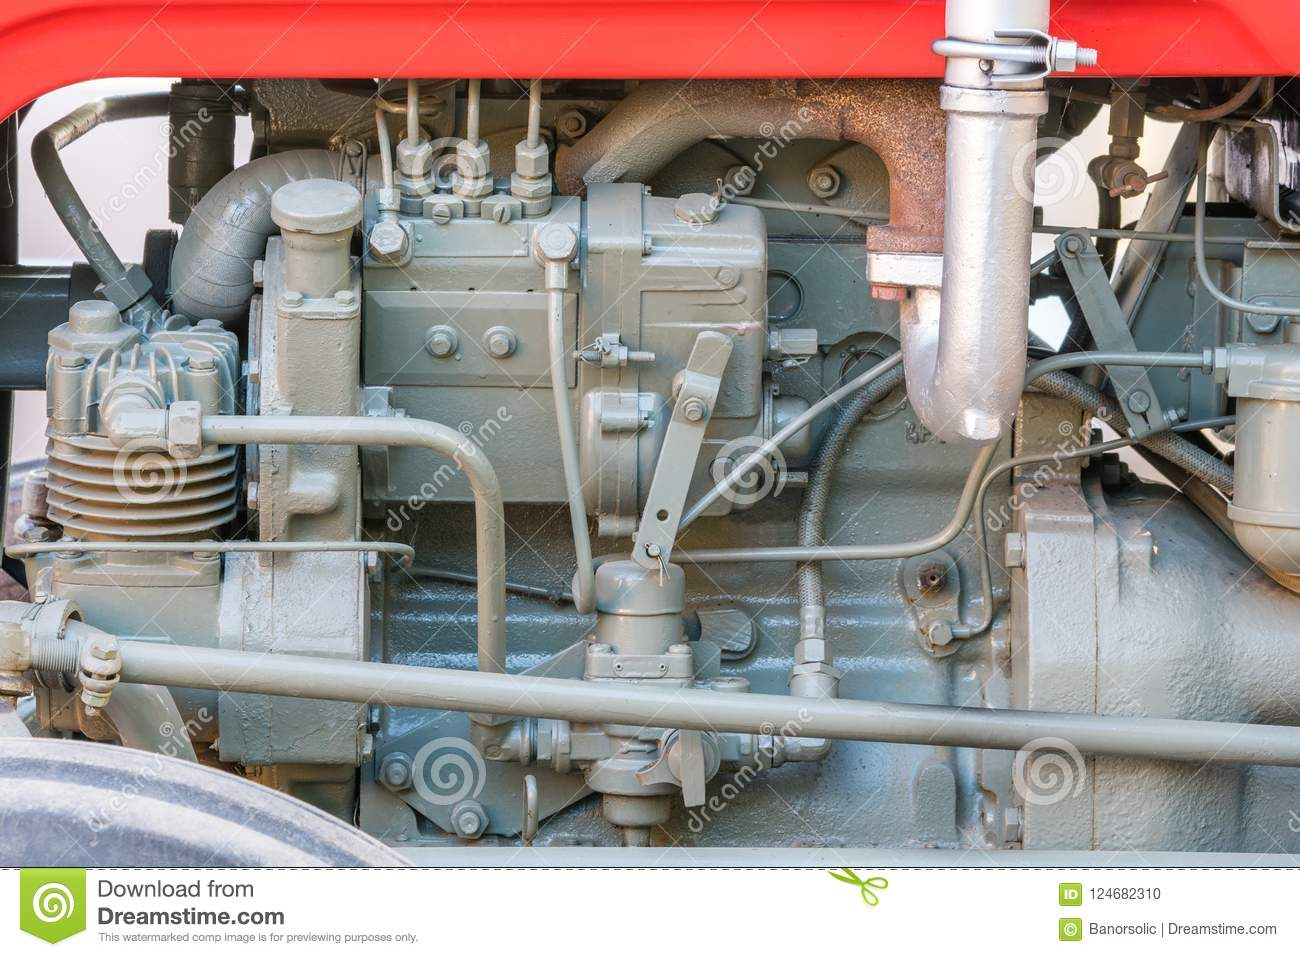 hight resolution of detail of old tractor machine or engine whit visible fuel pump air compressor